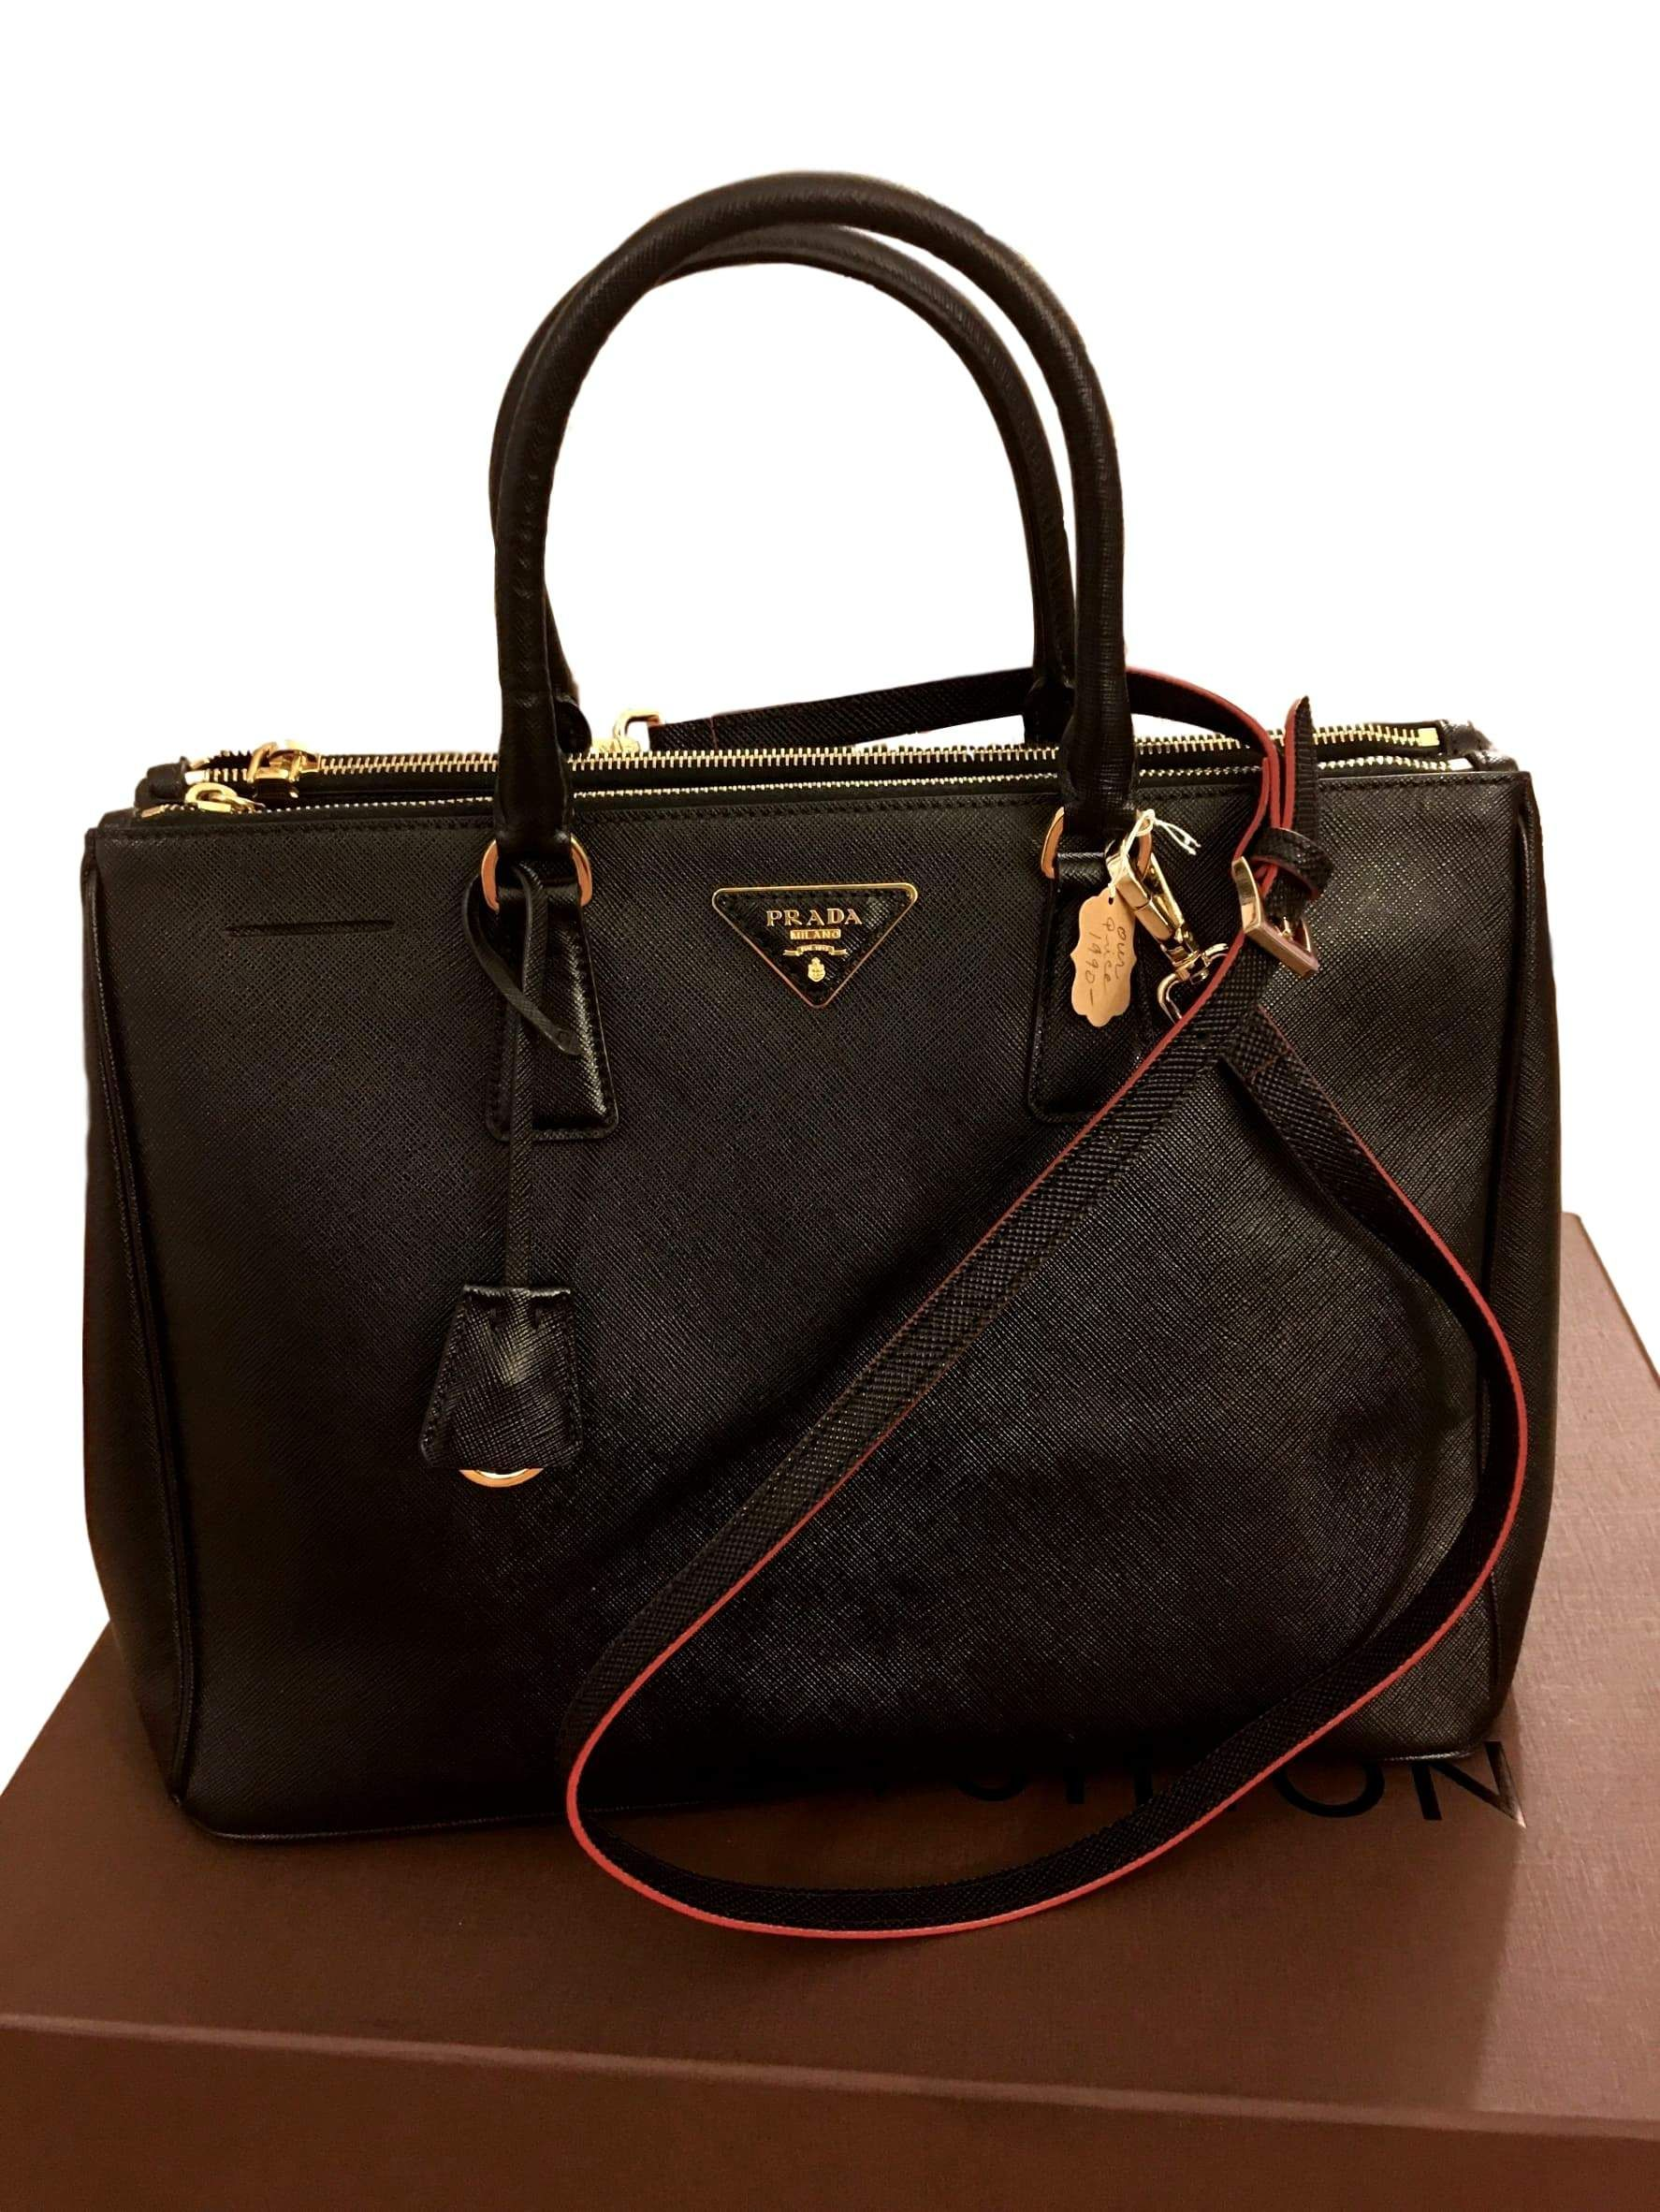 Prada Bag Downp New Arrivals All Luxury Bags Authentic In